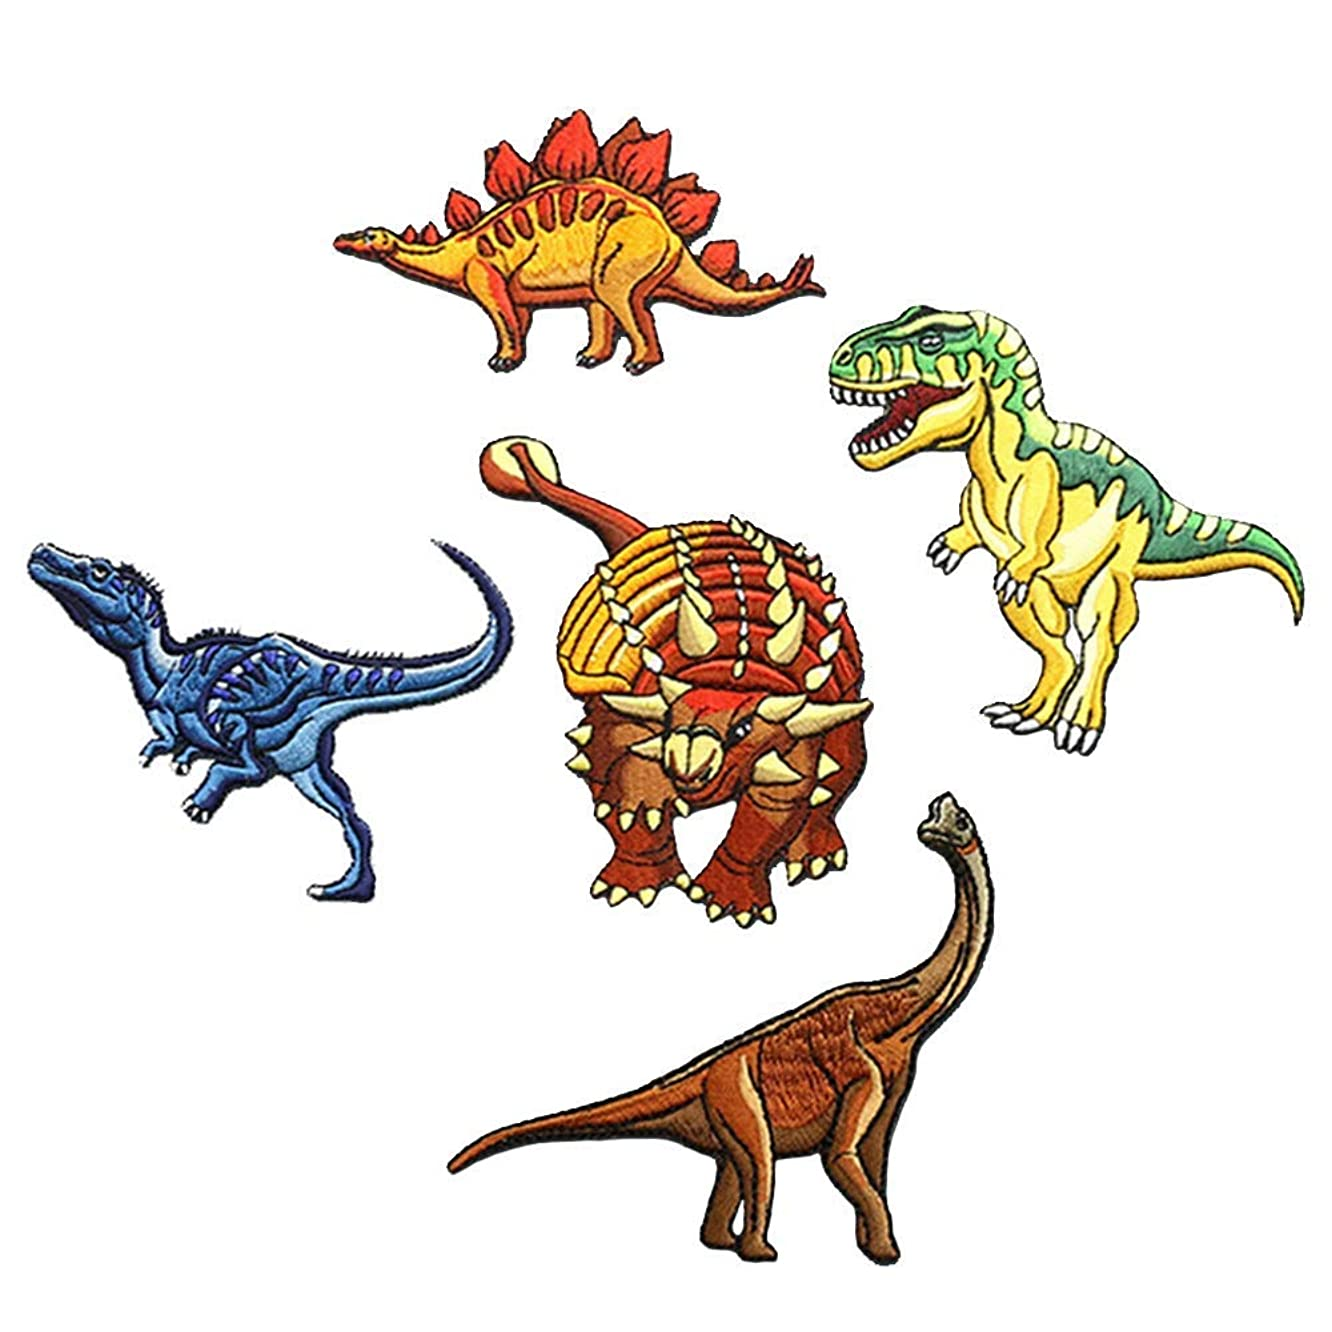 5 Pcs Dinosaur World Embroidered Patches,Jurassic Dinosaur Iron On Patches, Sew On Applique Patch,Dinosaur Park Cute Embroidery Patches, Cool Patches for Boys, Girls, Kids (T-Rex, Velociraptor, ECT)